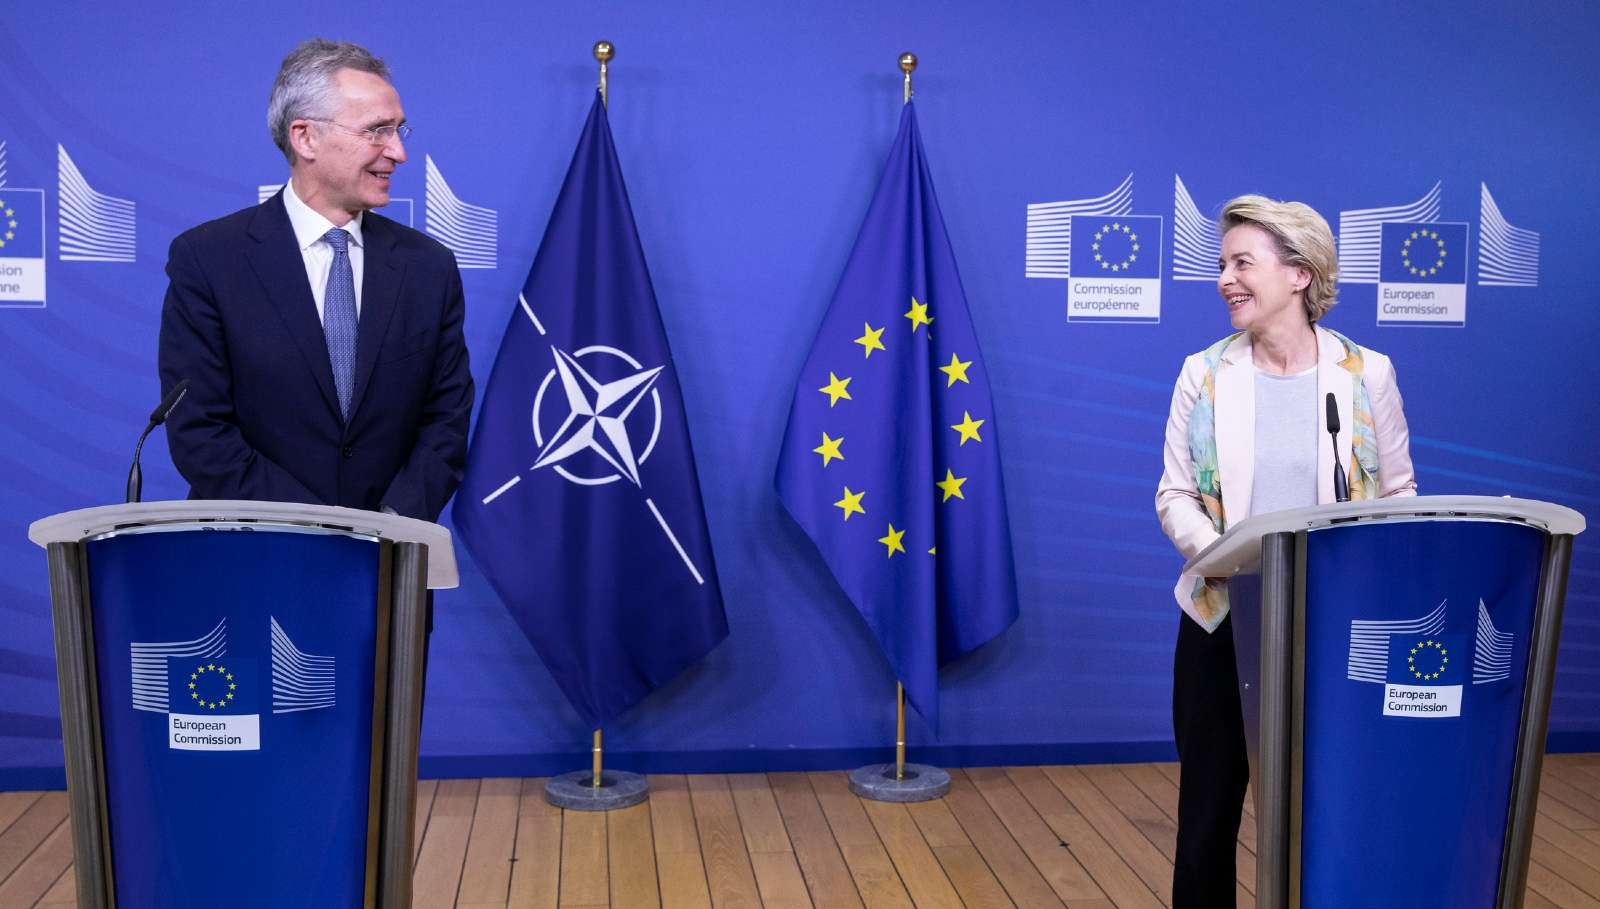 Joint press statements by NATO Secretary General Jens Stoltenberg and the President of the European Commission, Ursula von der Leyen ahead of the meeting with the members of the College of Commissioners